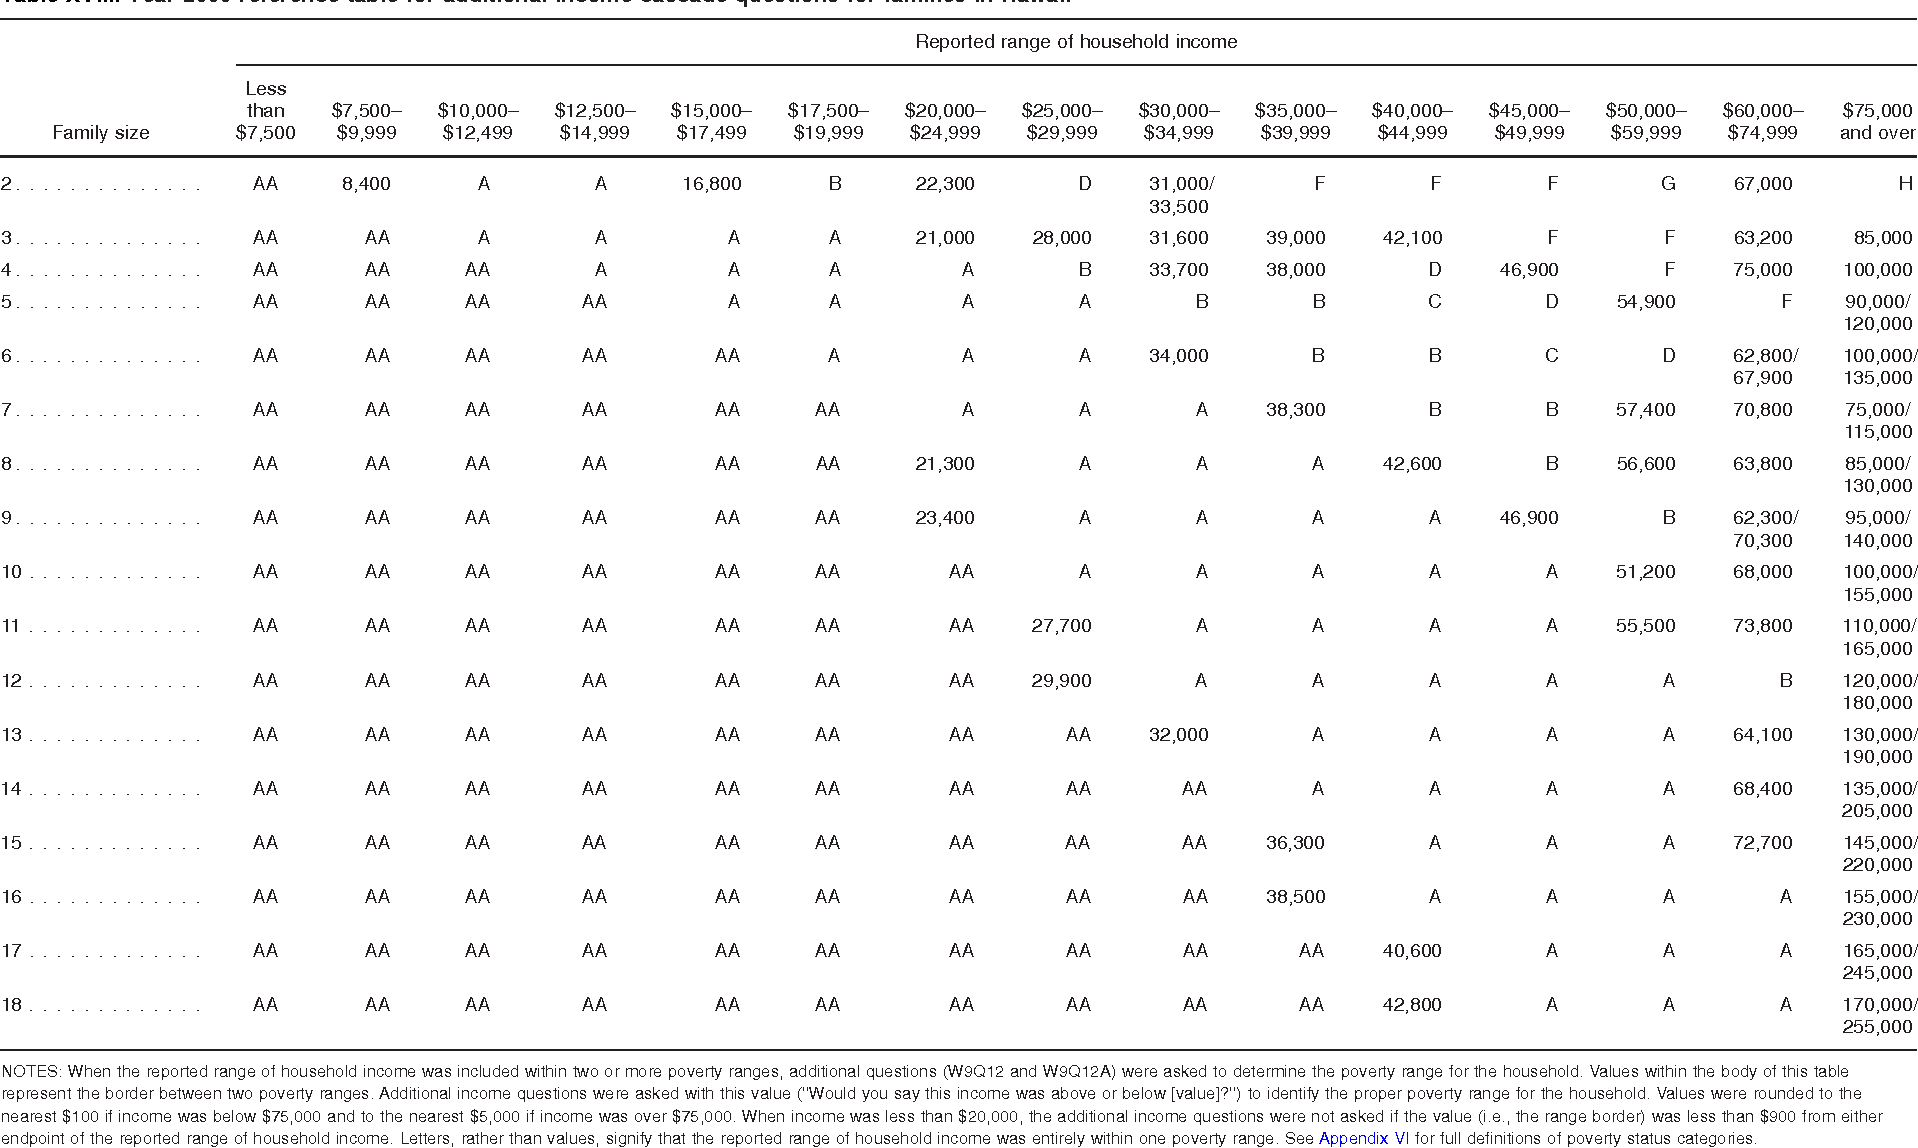 Table XVIII. Year 2009 reference table for additional income cascade questions for families in Hawaii